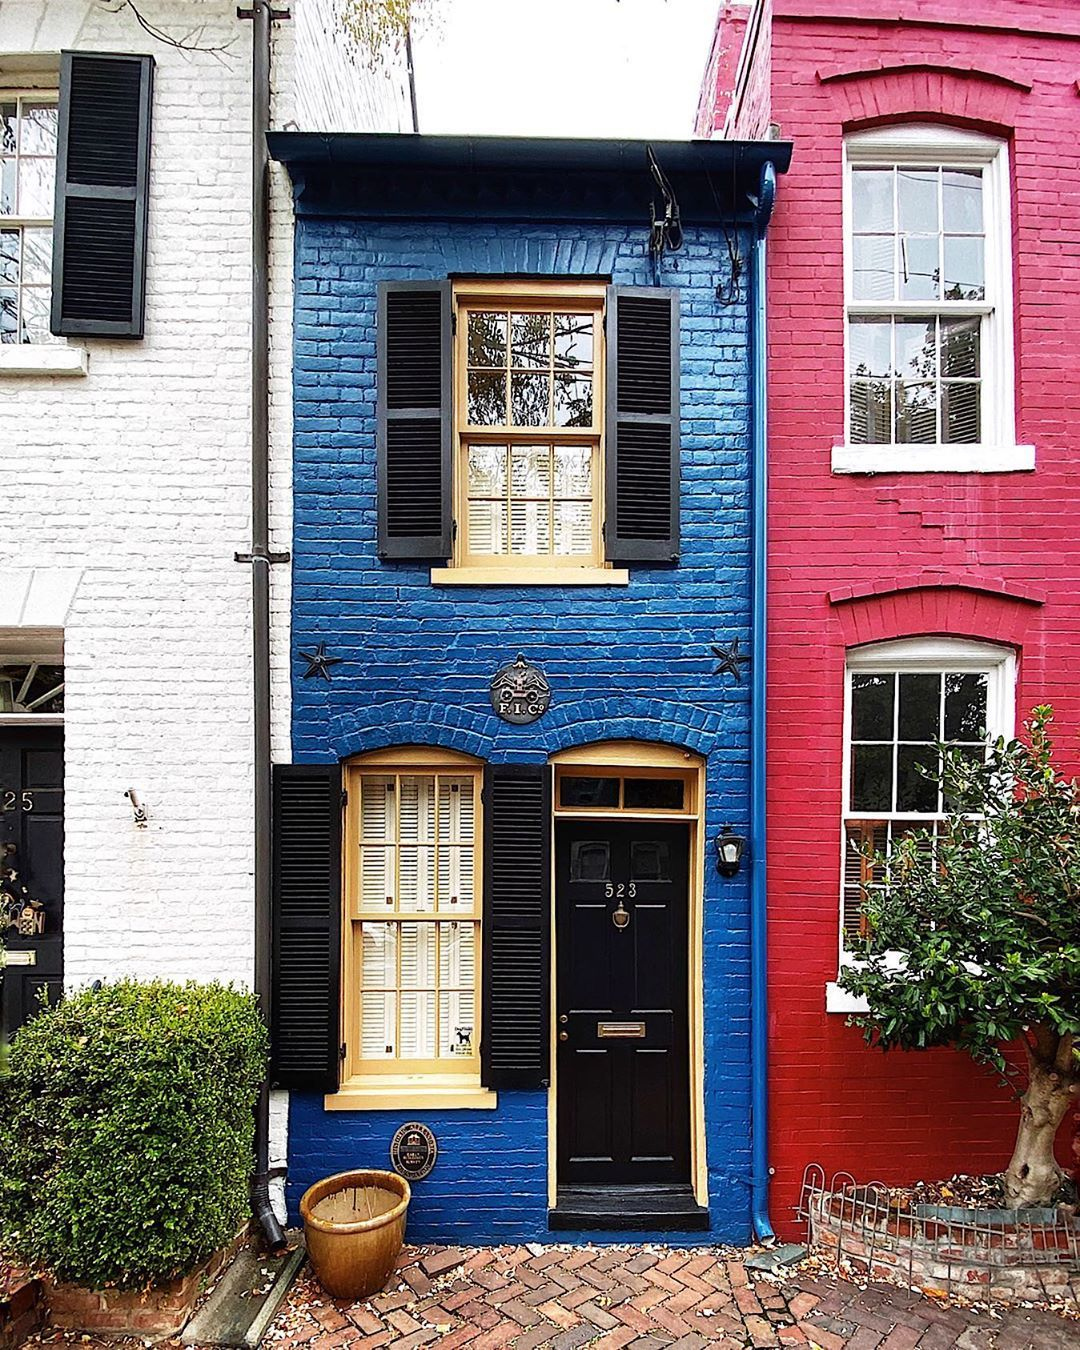 Dccitygirl Washington Dc On Instagram I Believe If I Stood In This House And Stretched My Arms Out Wide Old Town Apartments Apartments Exterior House